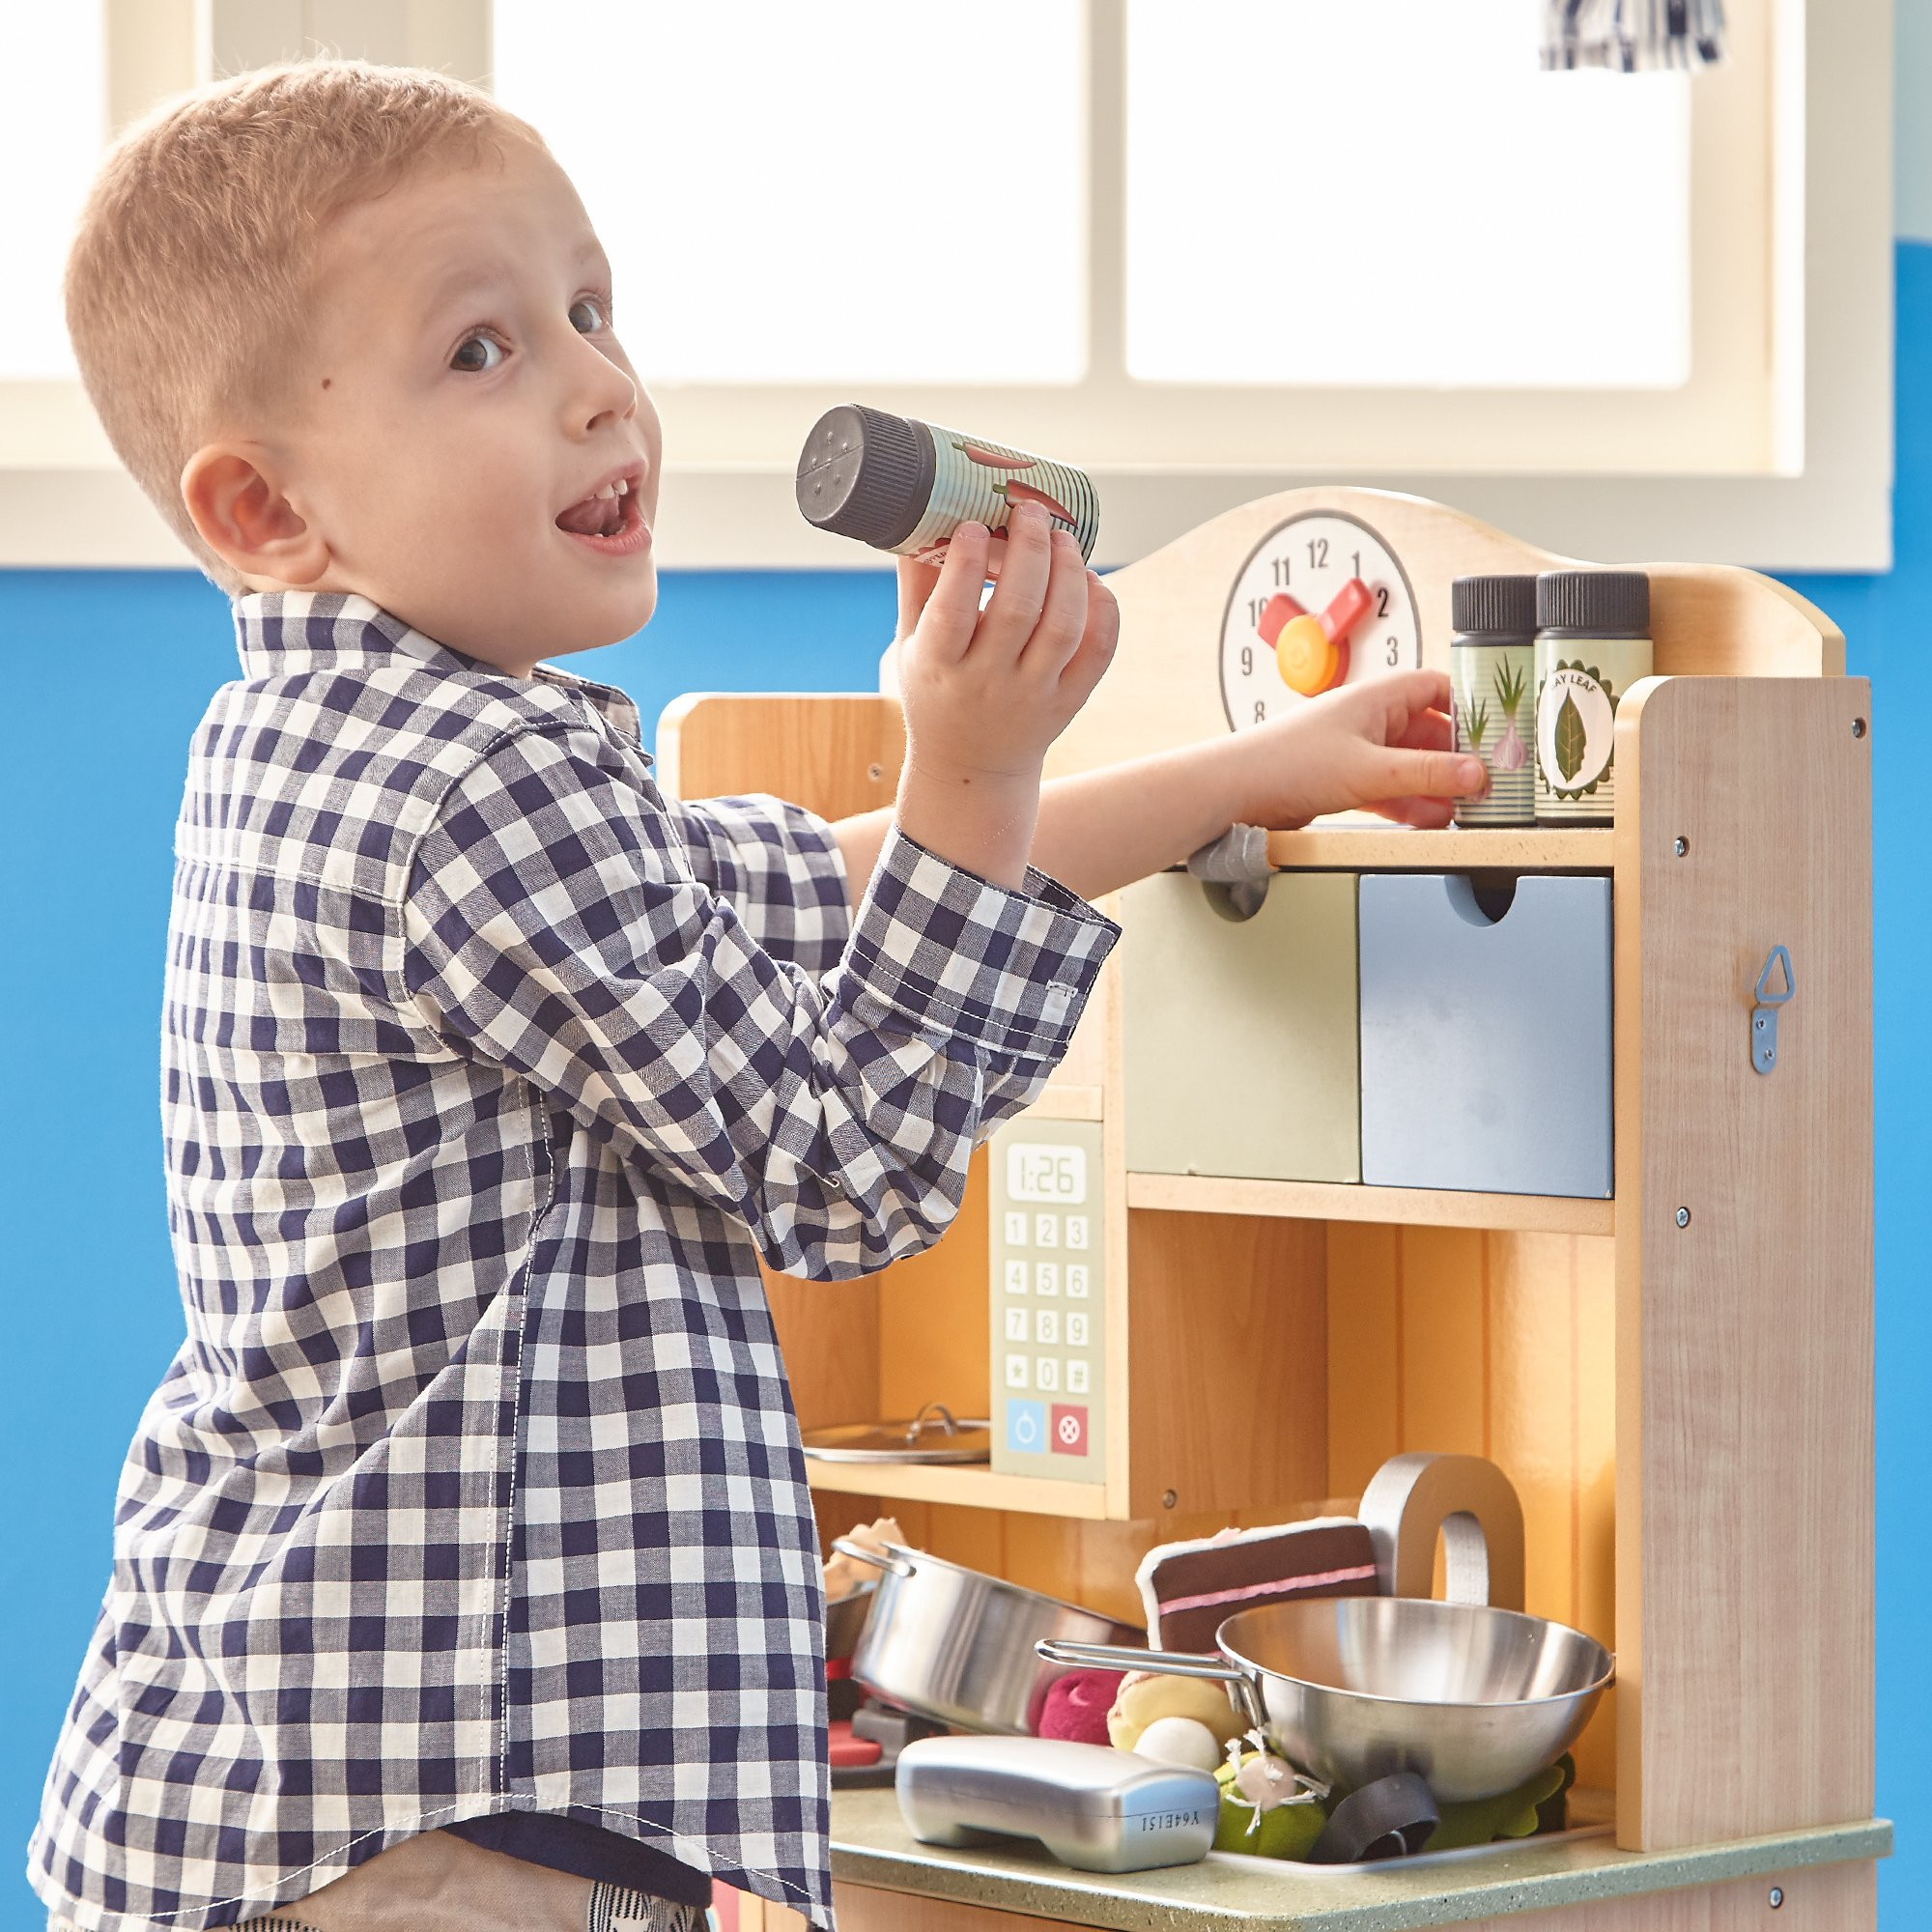 Teamson Kids - Little Chef Florence Classic Kids Play Kitchen | Toddler Pretend Play Set with Accessories - Wood Grain by Teamson Kids (Image #4)